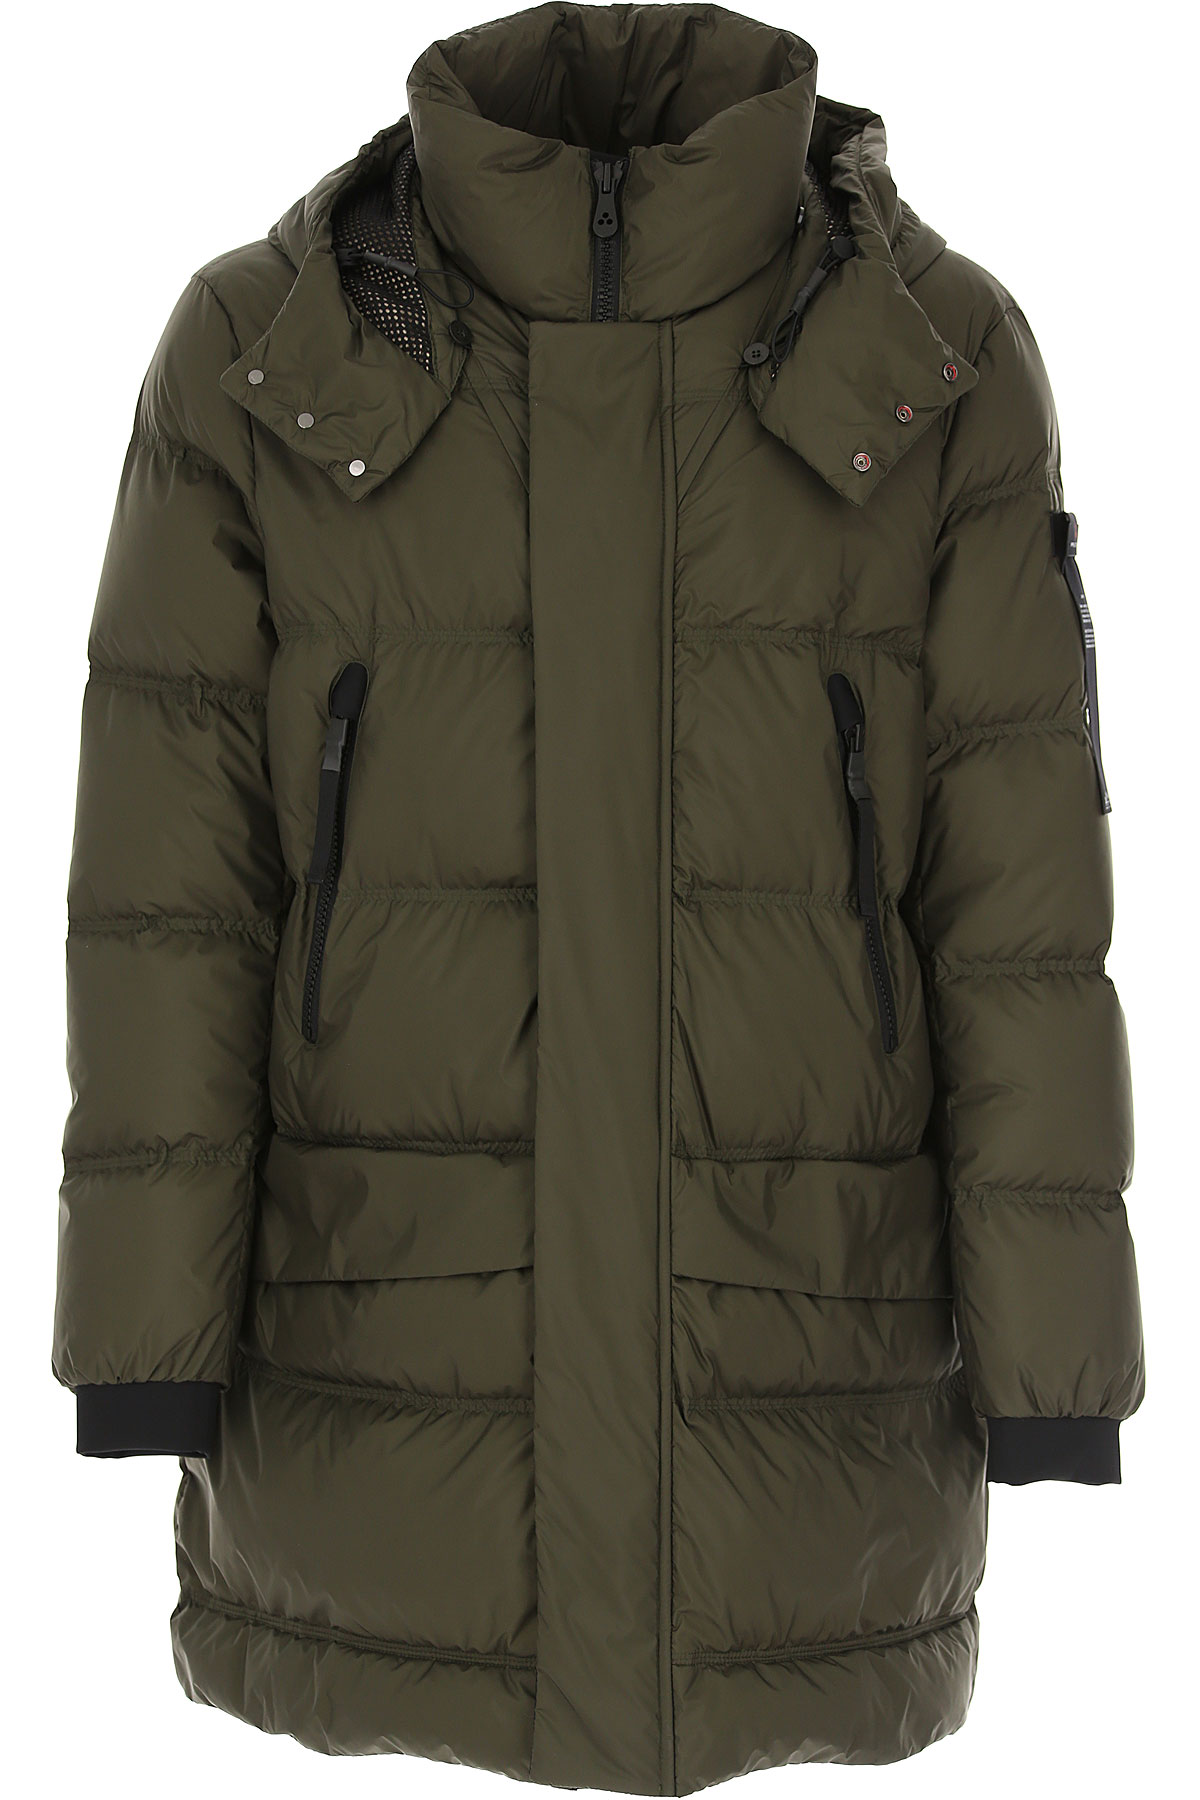 Peuterey Down Jacket for Men, Puffer Ski Jacket On Sale, Military Green, Down, 2019, L M S